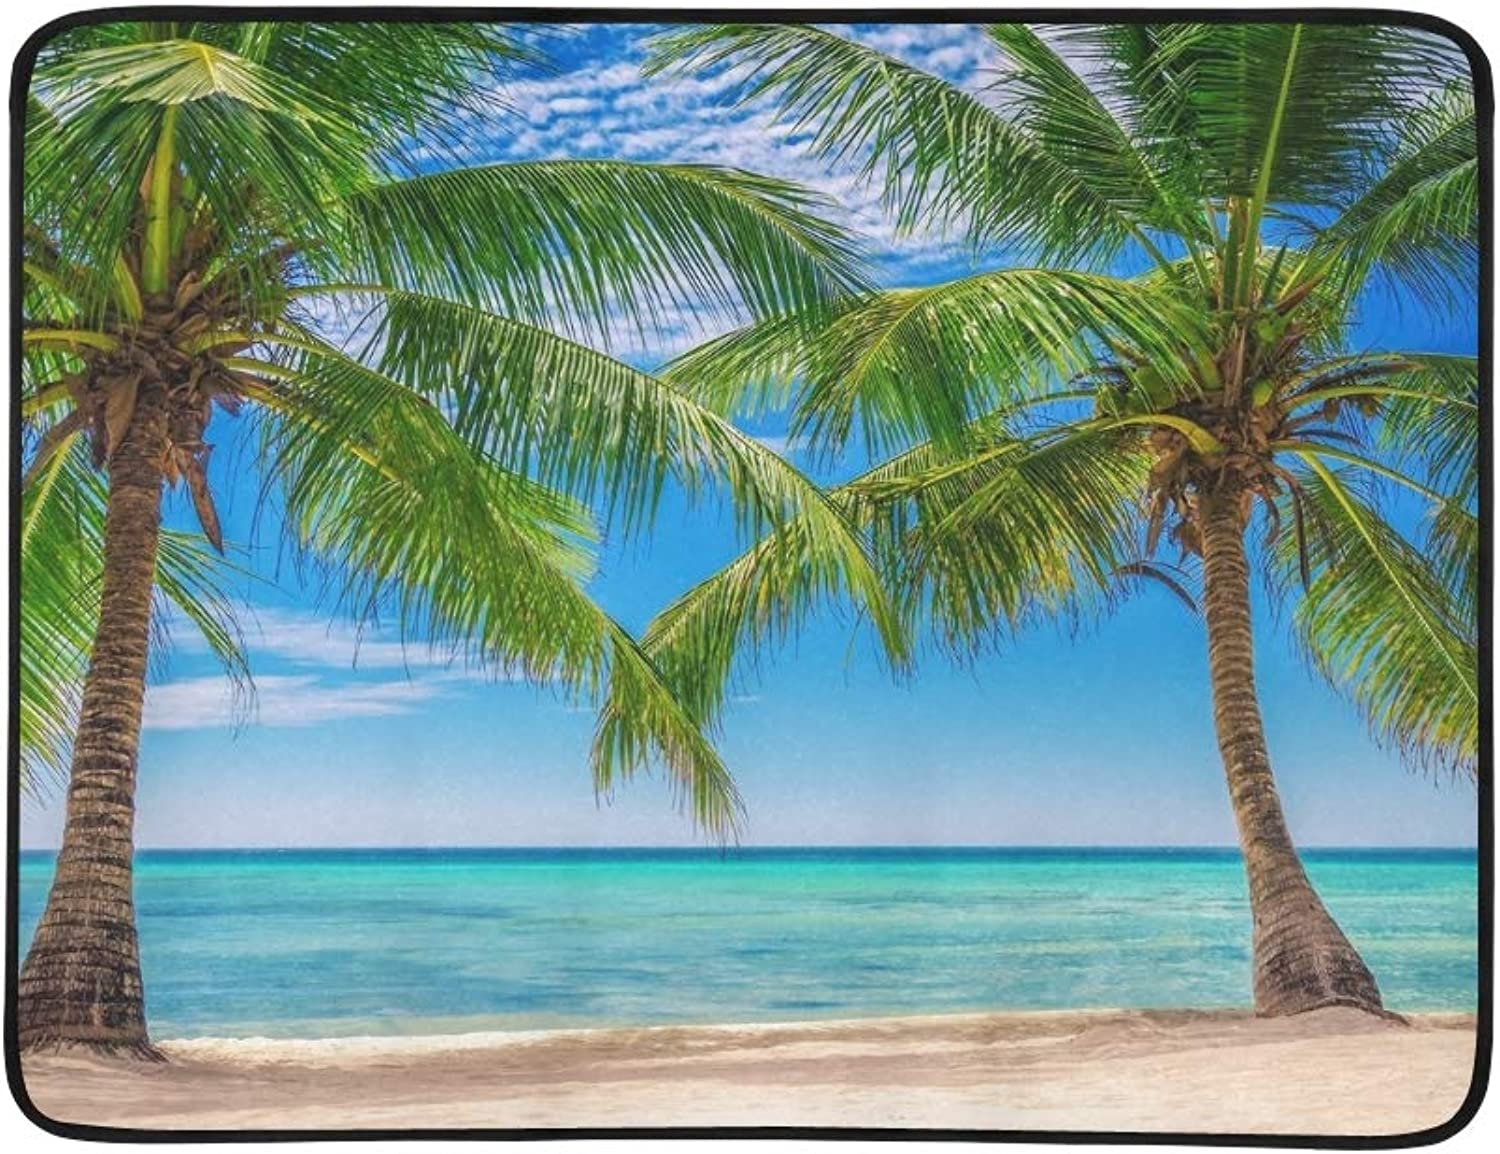 Palm Tress Exotic Beach Dominican Republic Portable and Foldable Blanket Mat 60x78 Inch Handy Mat for Camping Picnic Beach Indoor Outdoor Travel